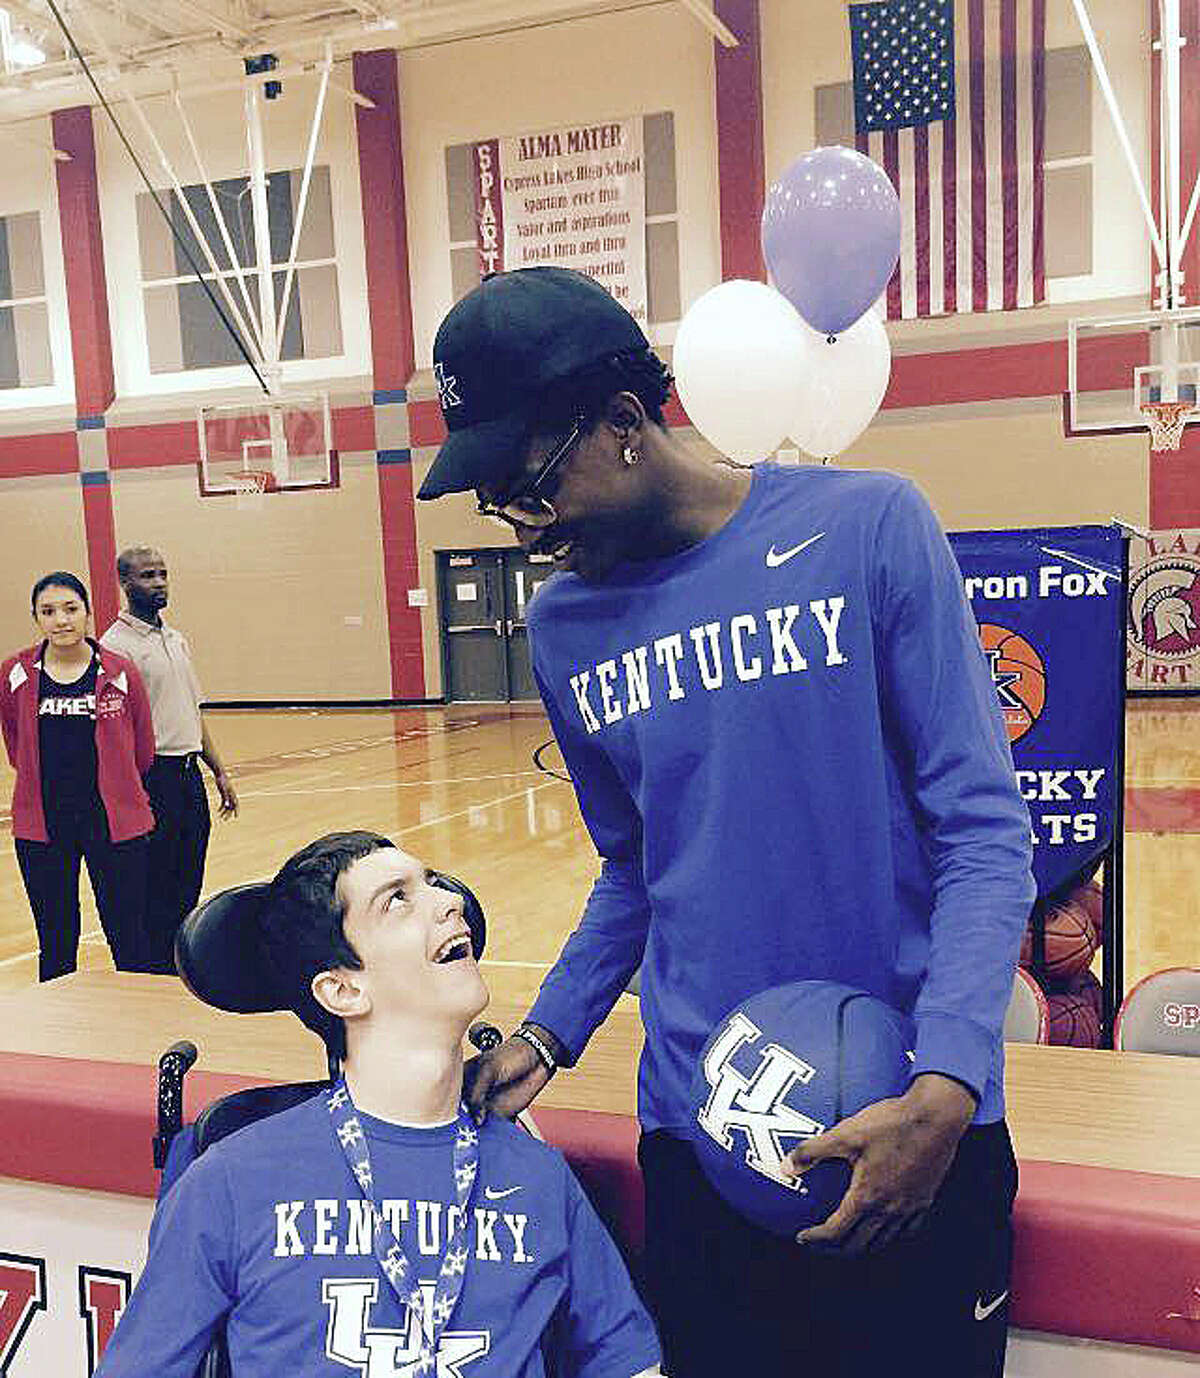 Seth Barnett and his friend and classmate at Cylakes High school De'Aaron Fox, who is now a University of Kentucky Kentucky Wildcat player. De'Aaron Fox will play his first game for the Wildcats starting this basketball season.